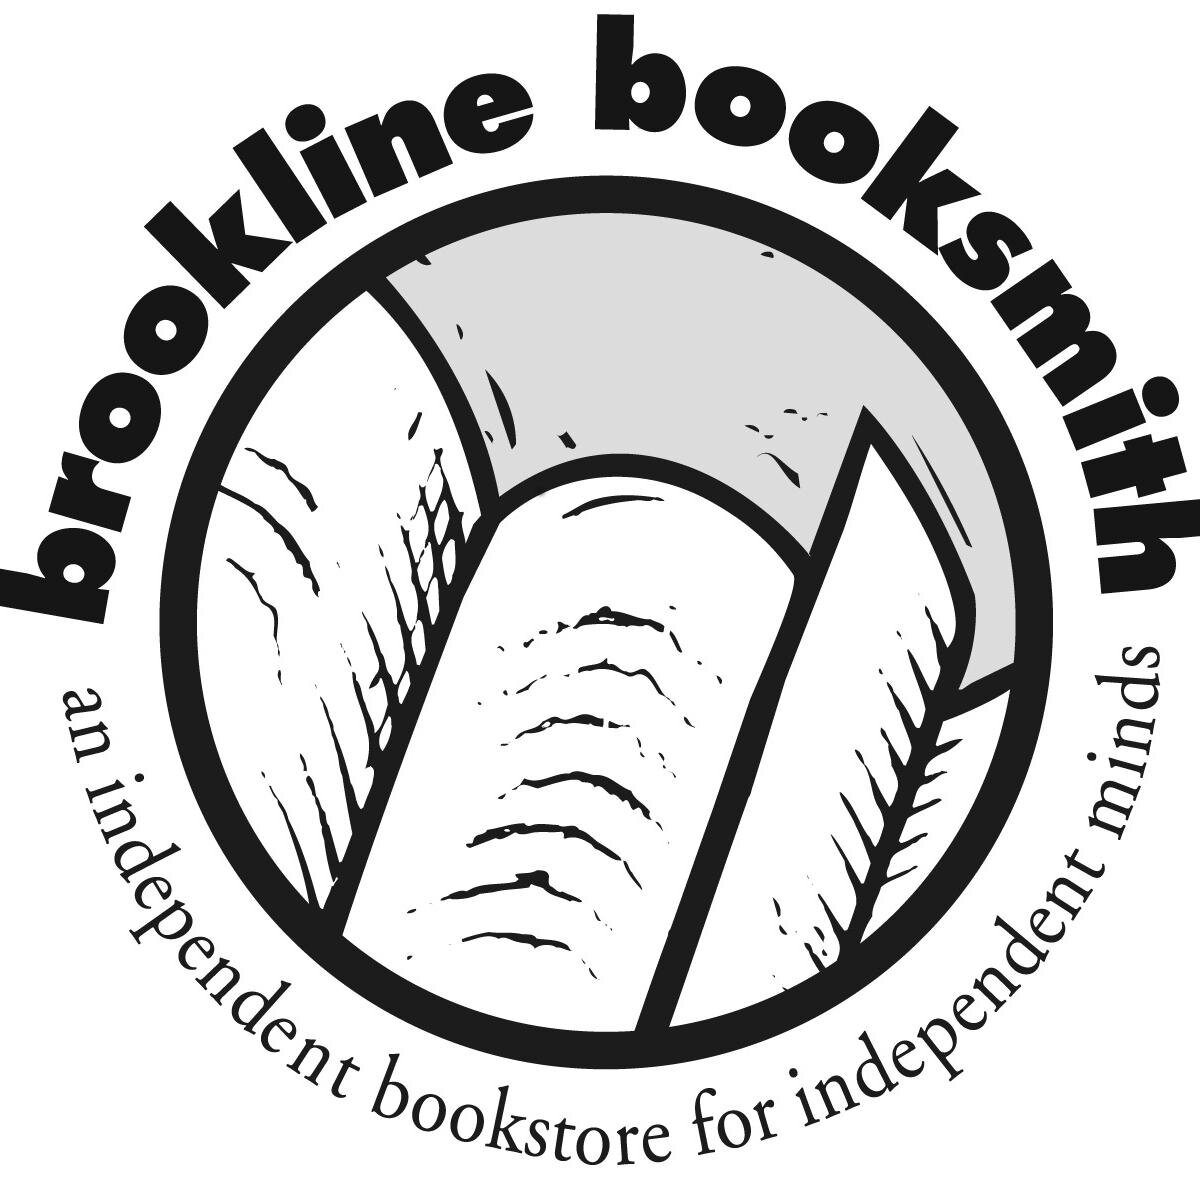 black and white book illustration with brookline booksmith text